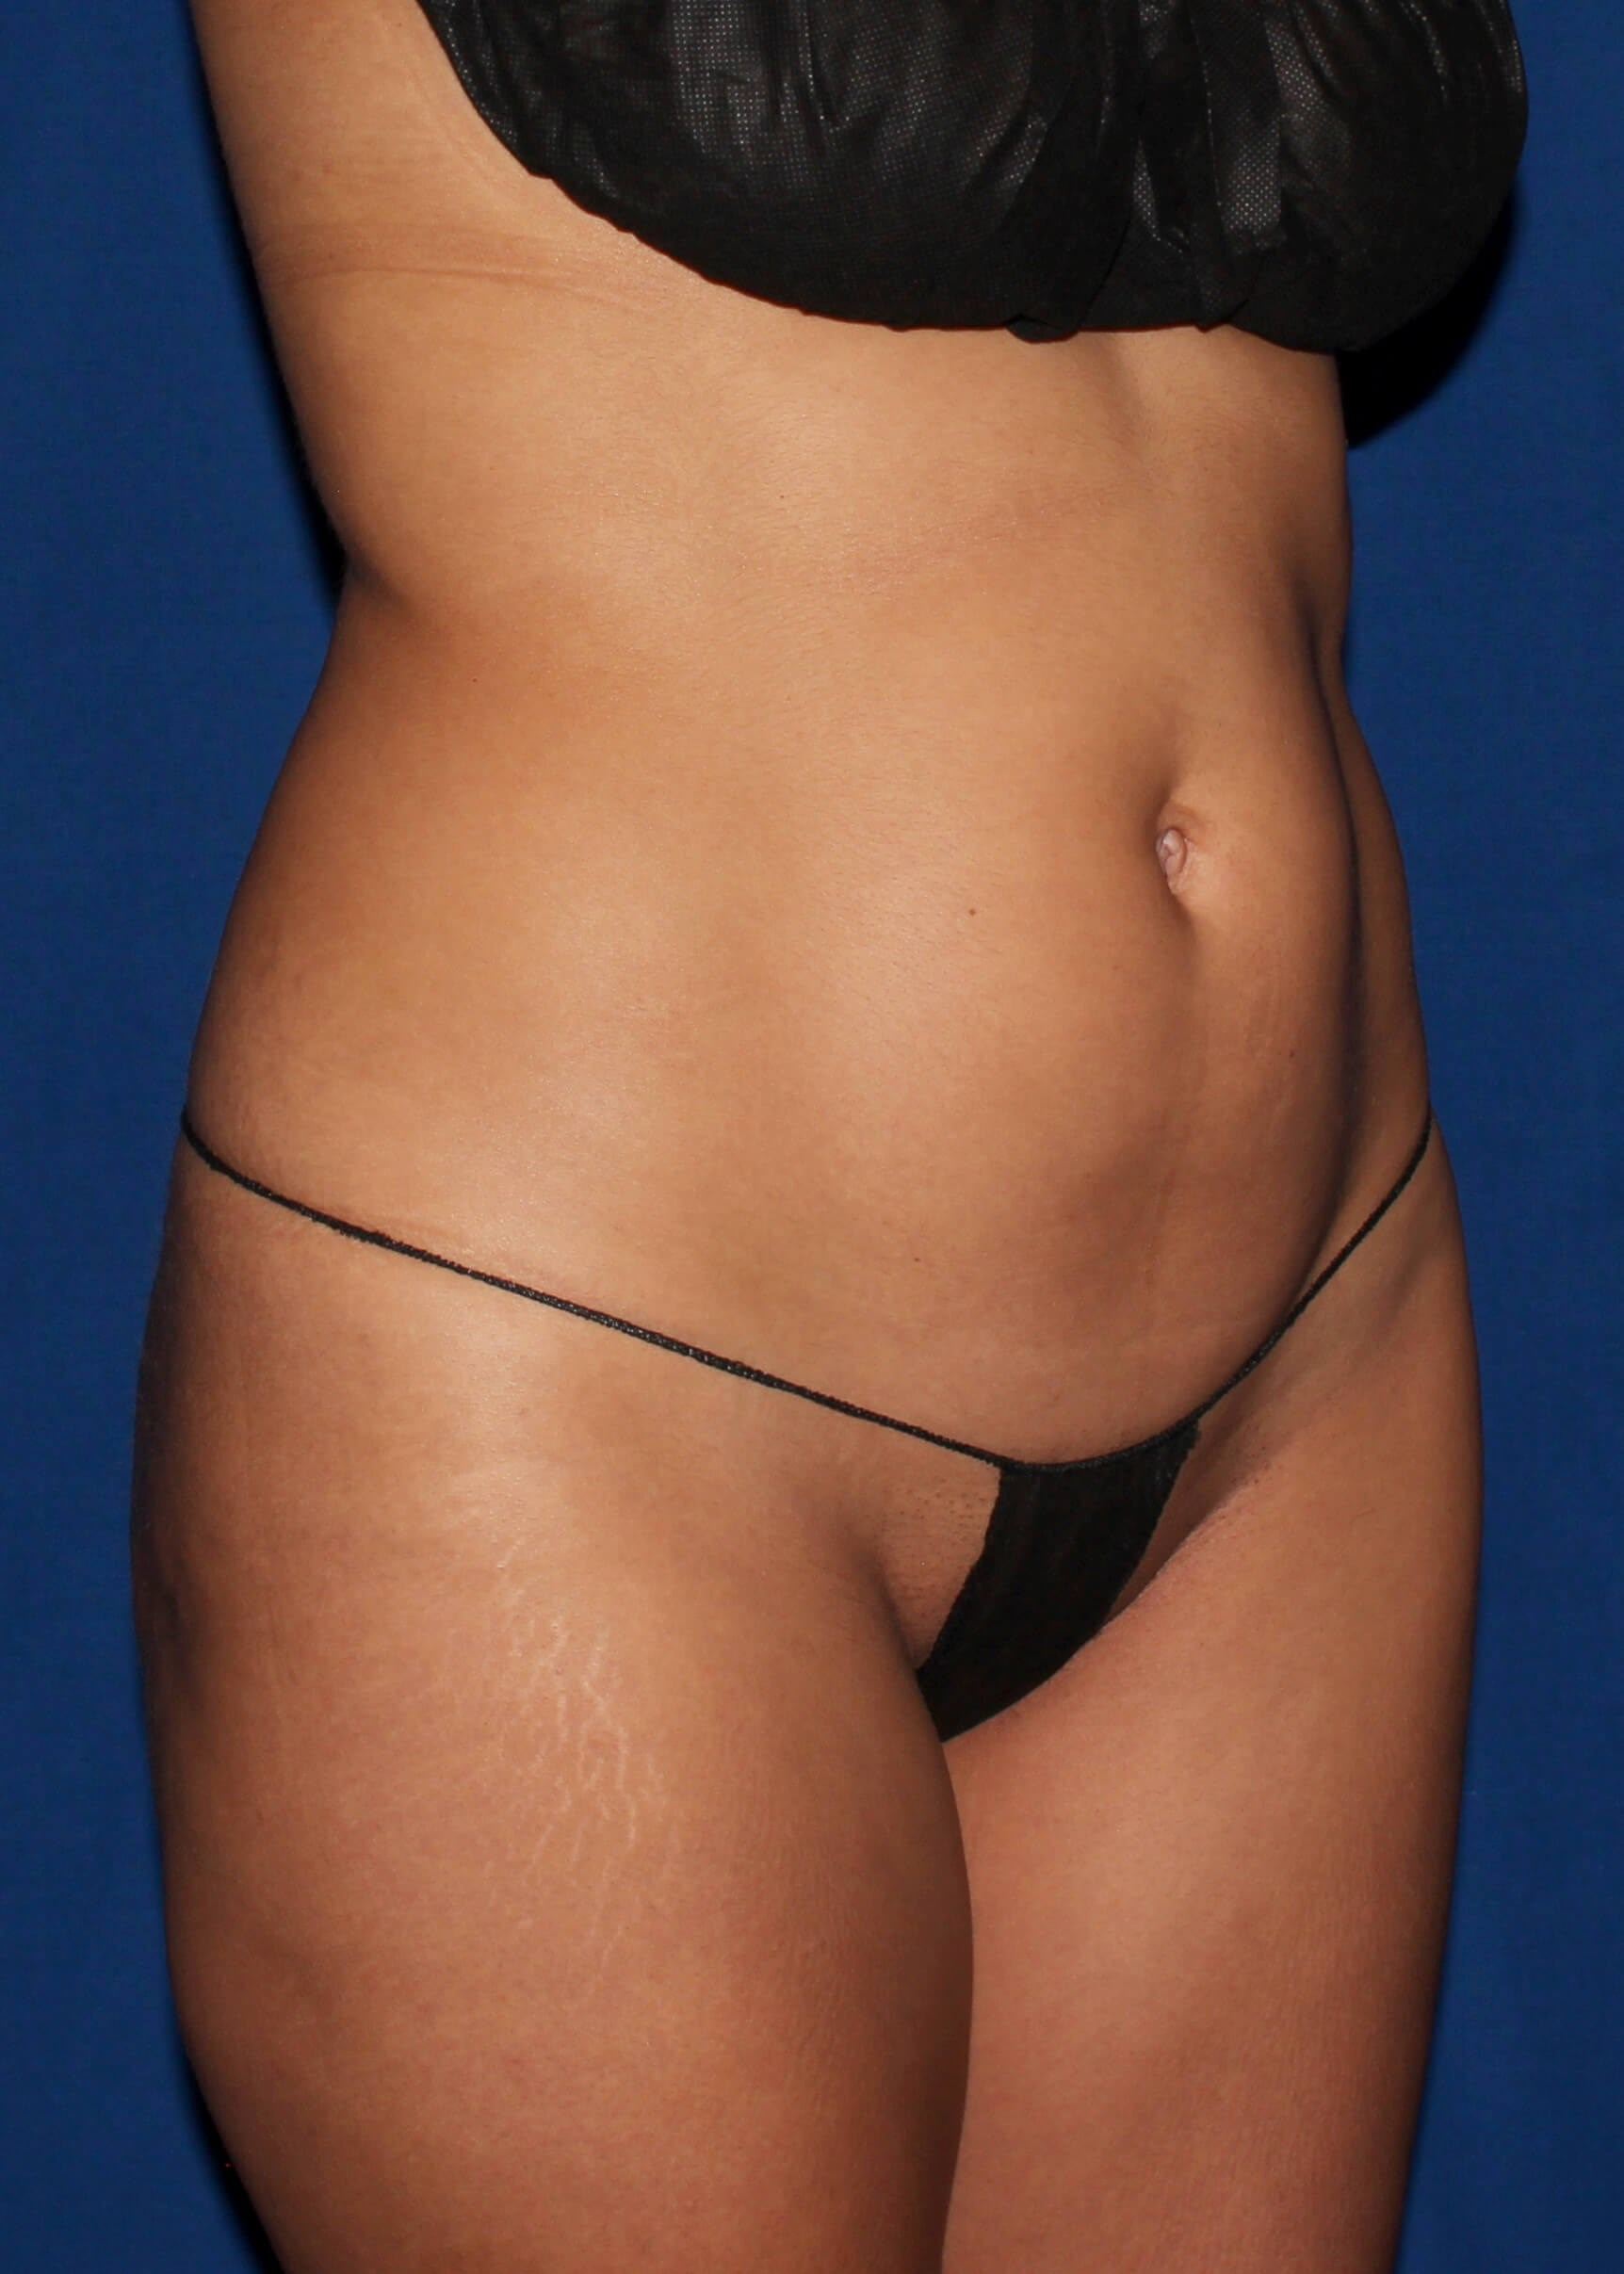 Full Torso Lipo Before Right Oblique View - Right Oblique View